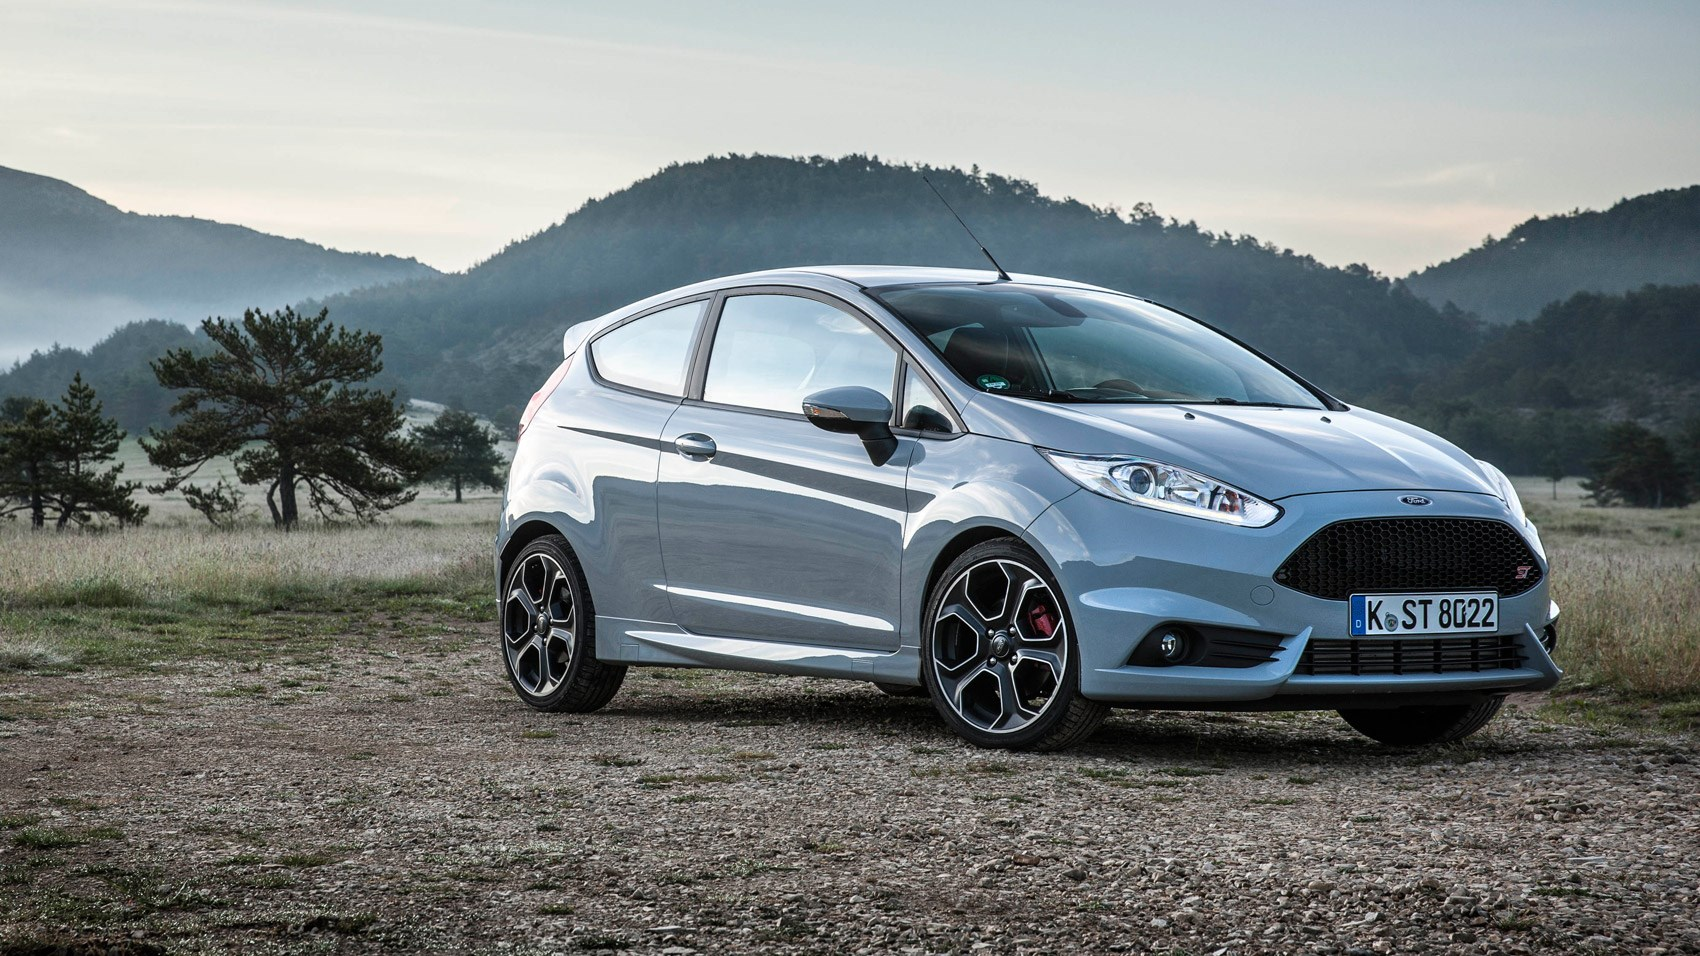 Fiesta St For Sale >> Ford Fiesta ST200 (2016) review | CAR Magazine